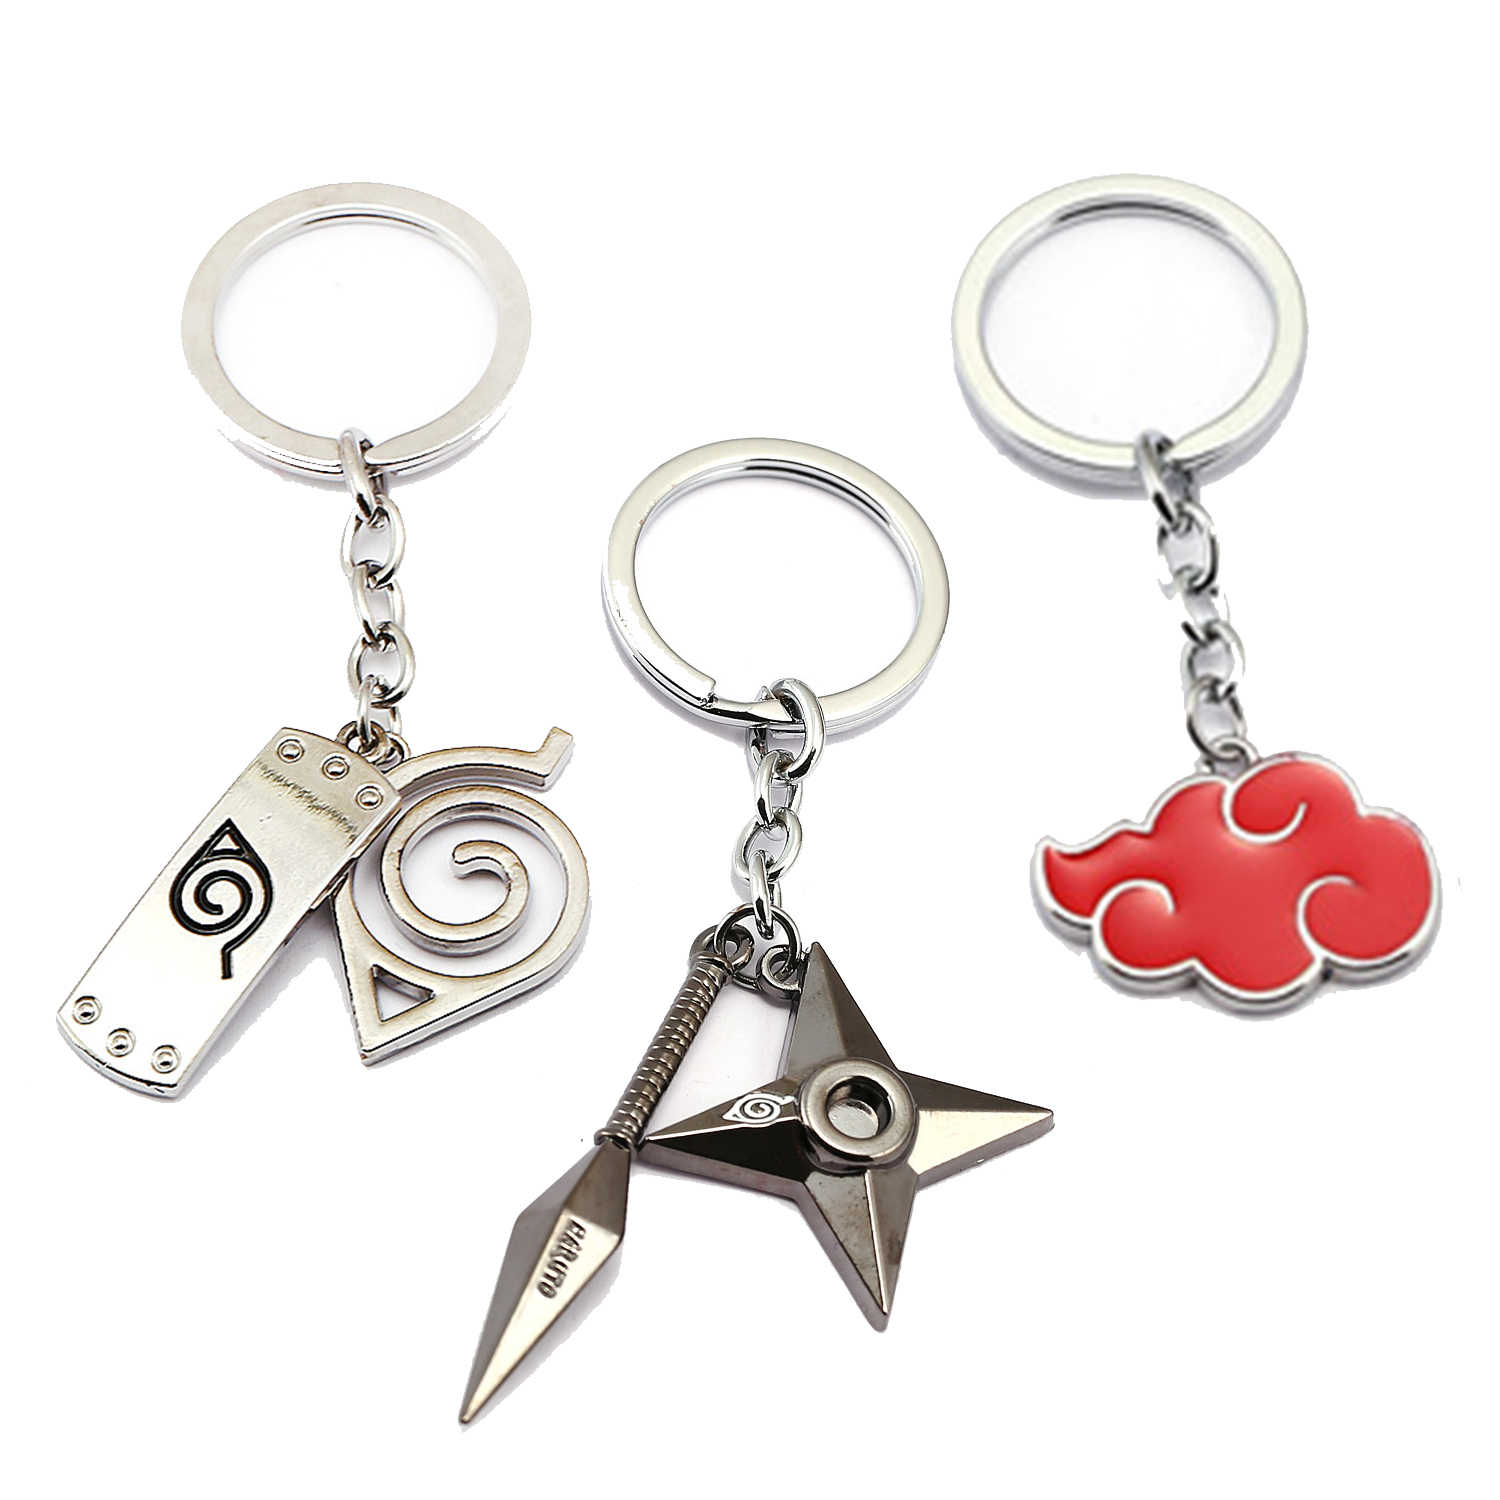 25 Style NARUTO Keychain Anime Key Chain Akatsuki hat Key Ring Holder scrolls Pendant Chaveiro Jewelry Souvenir